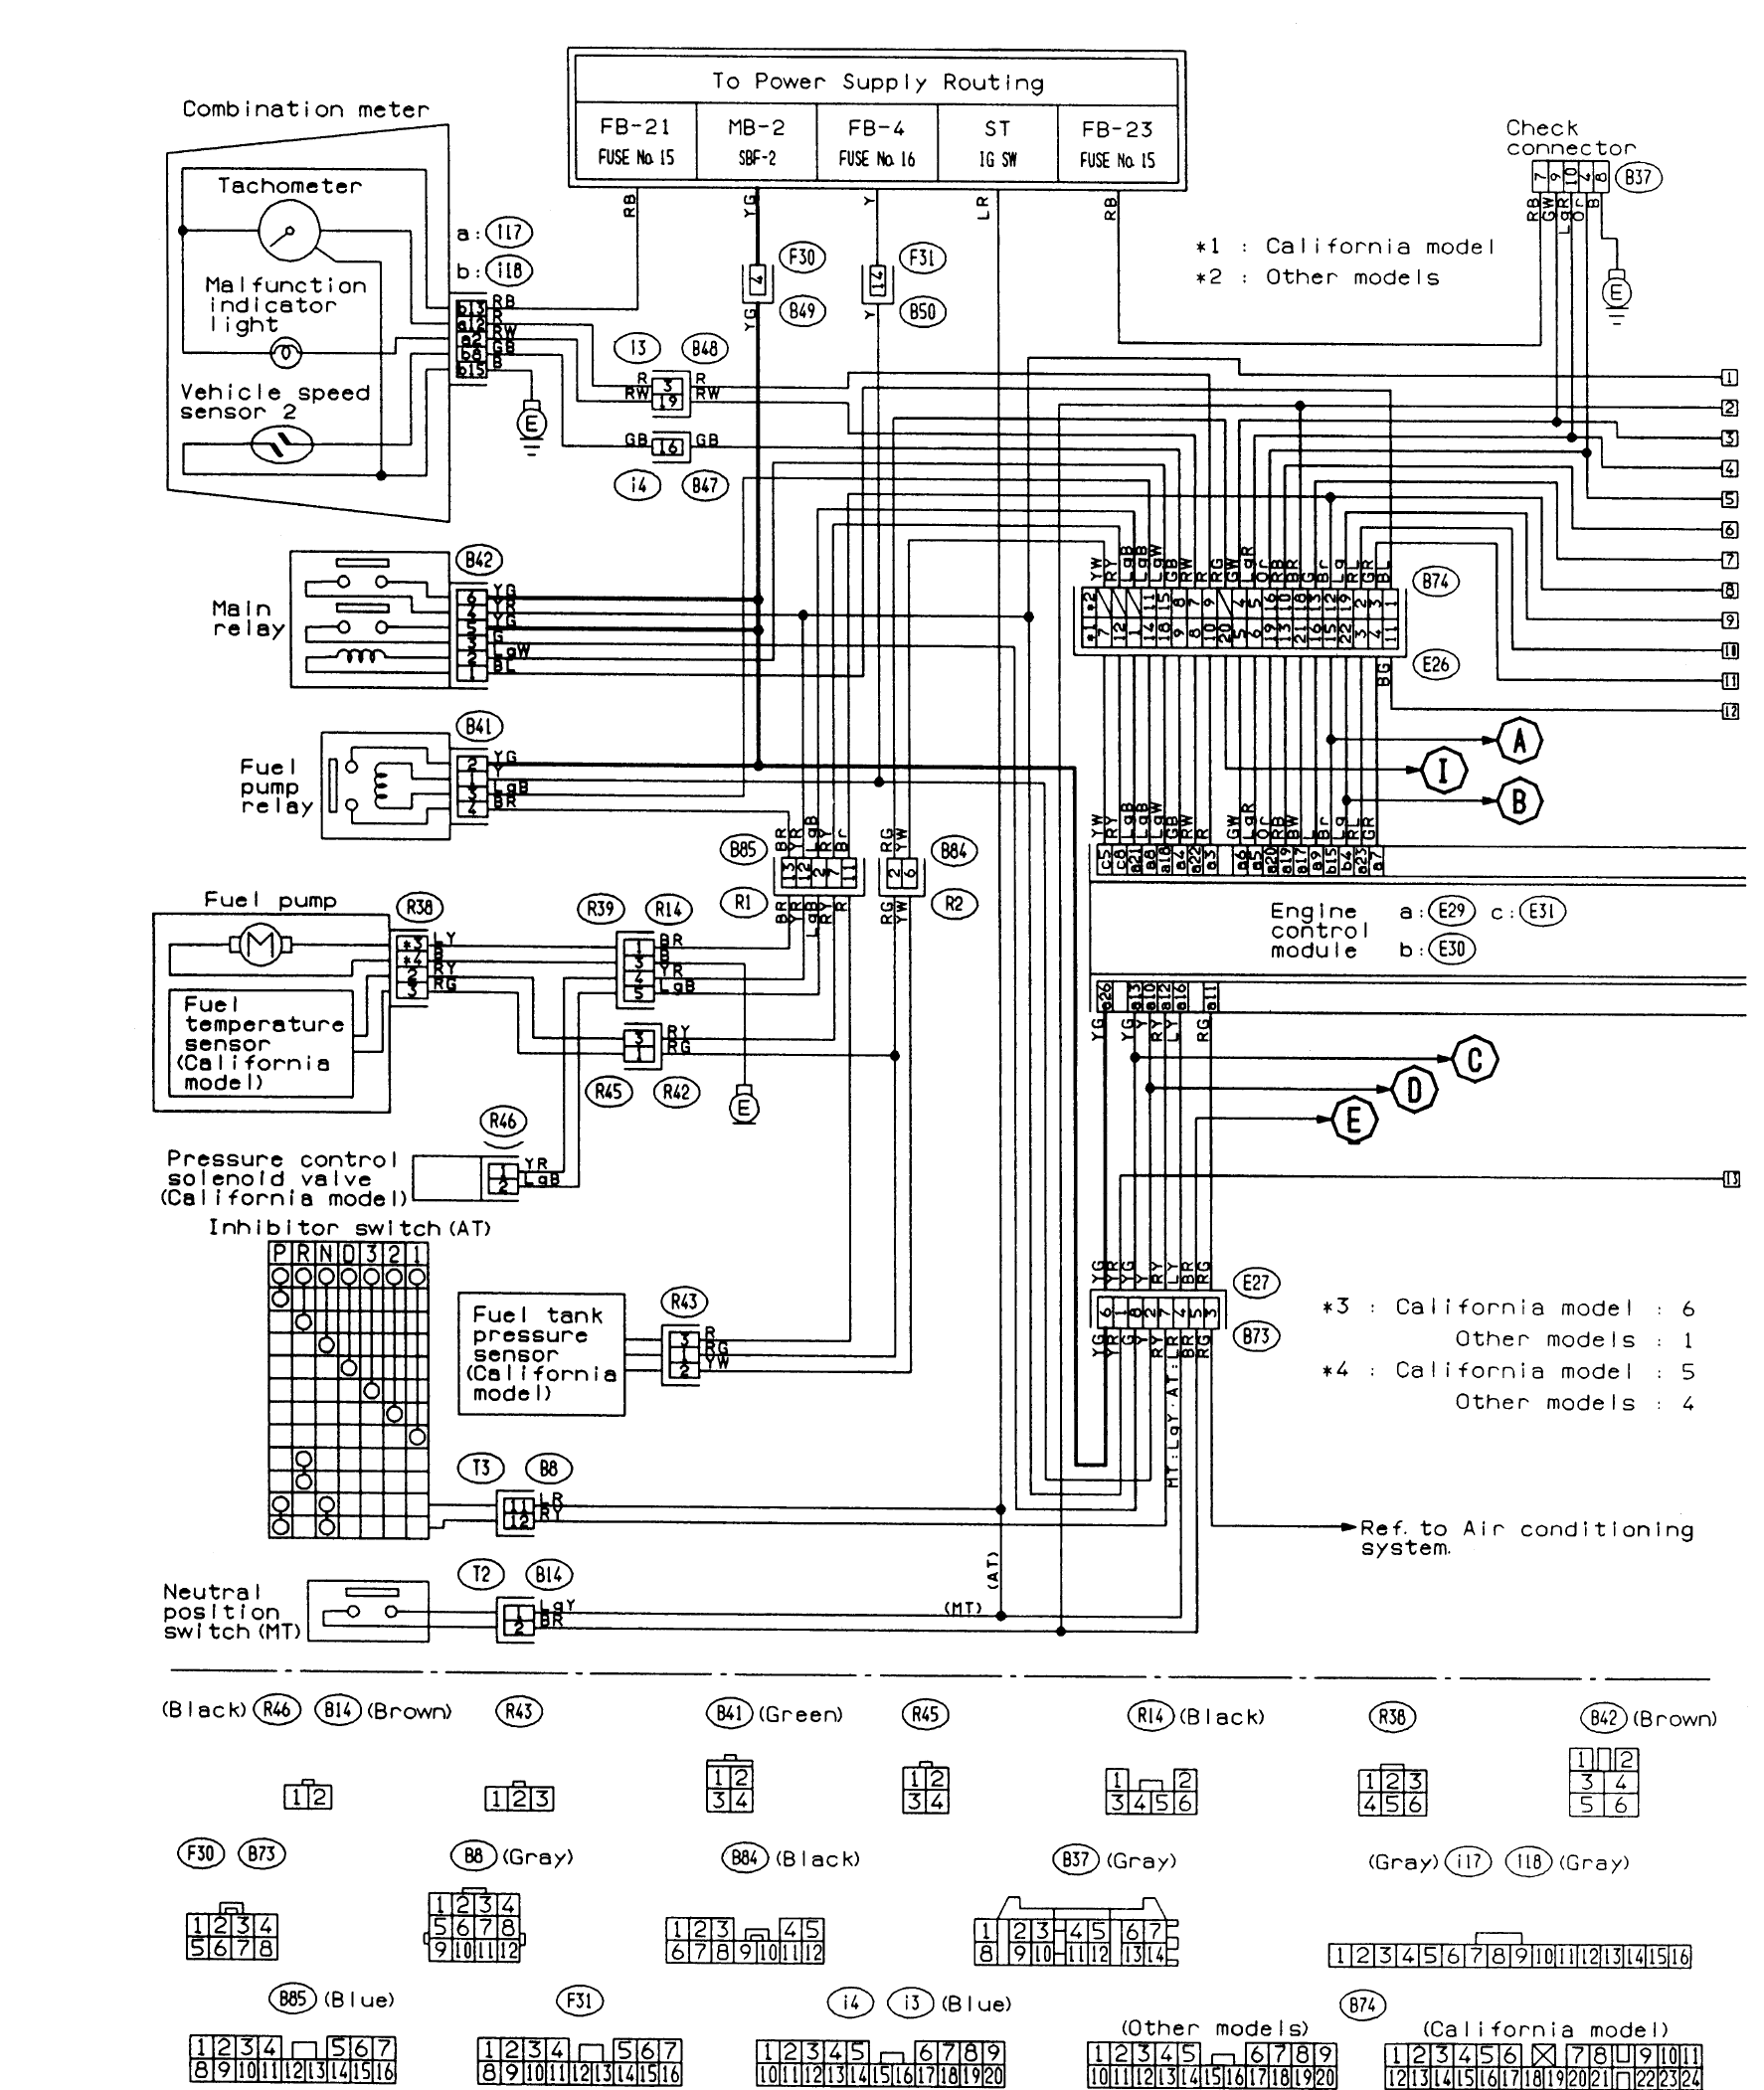 Peachy Electrical Diagram For Ac Unit In 2009 Subaru Forester Pinouts For Wiring Cloud Xortanetembamohammedshrineorg